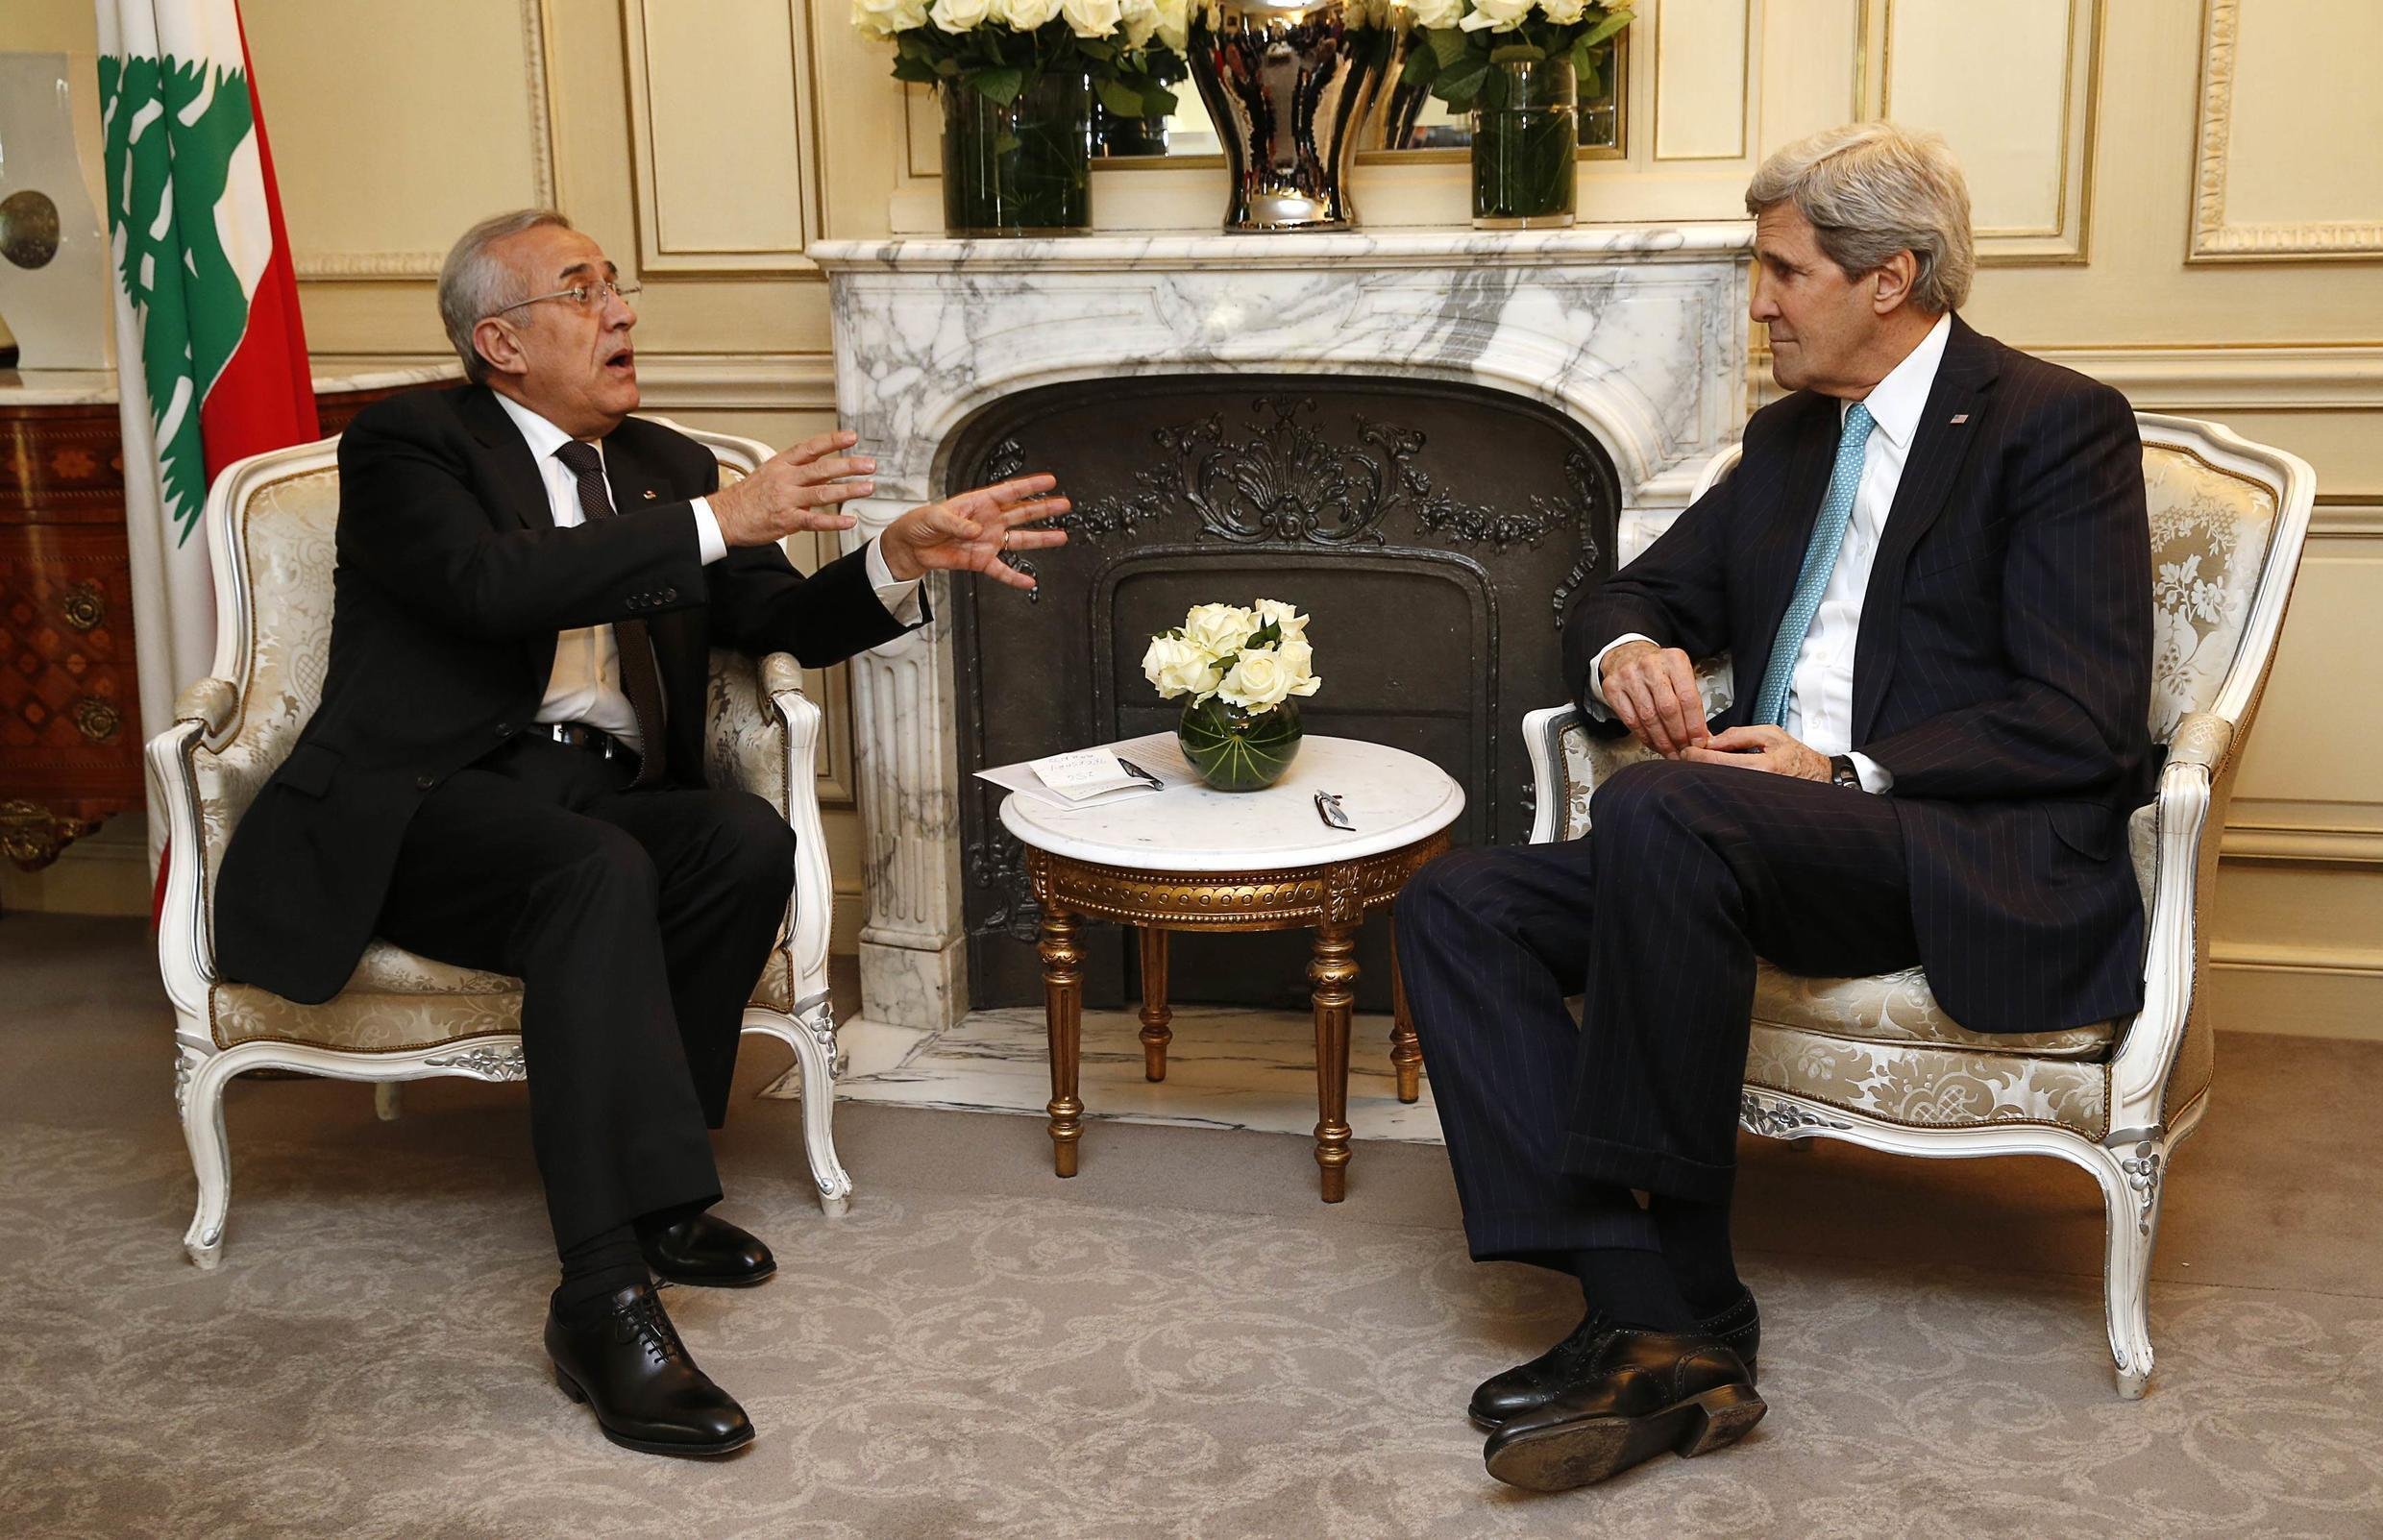 Lebanese President Michel Sleiman (L) and US Secretary of State John Kerry after the International Support Group for Lebanon meeting at the Elysee Palace